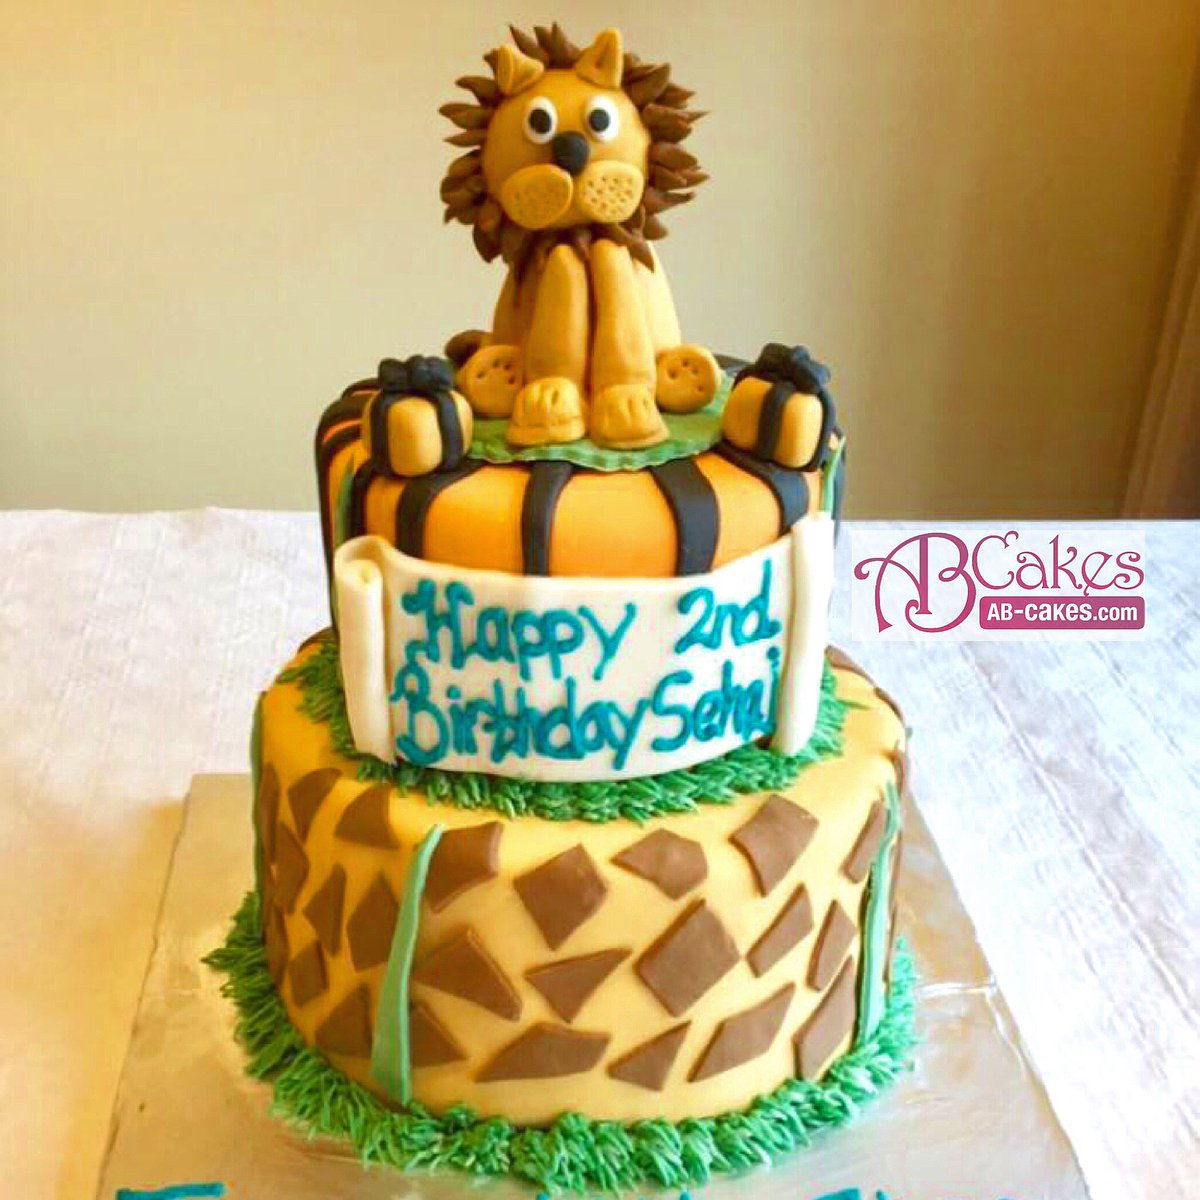 Remarkable Ab Cakes On Twitter A Lion Themed Birthday Cake For A Little Cub Funny Birthday Cards Online Aboleapandamsfinfo